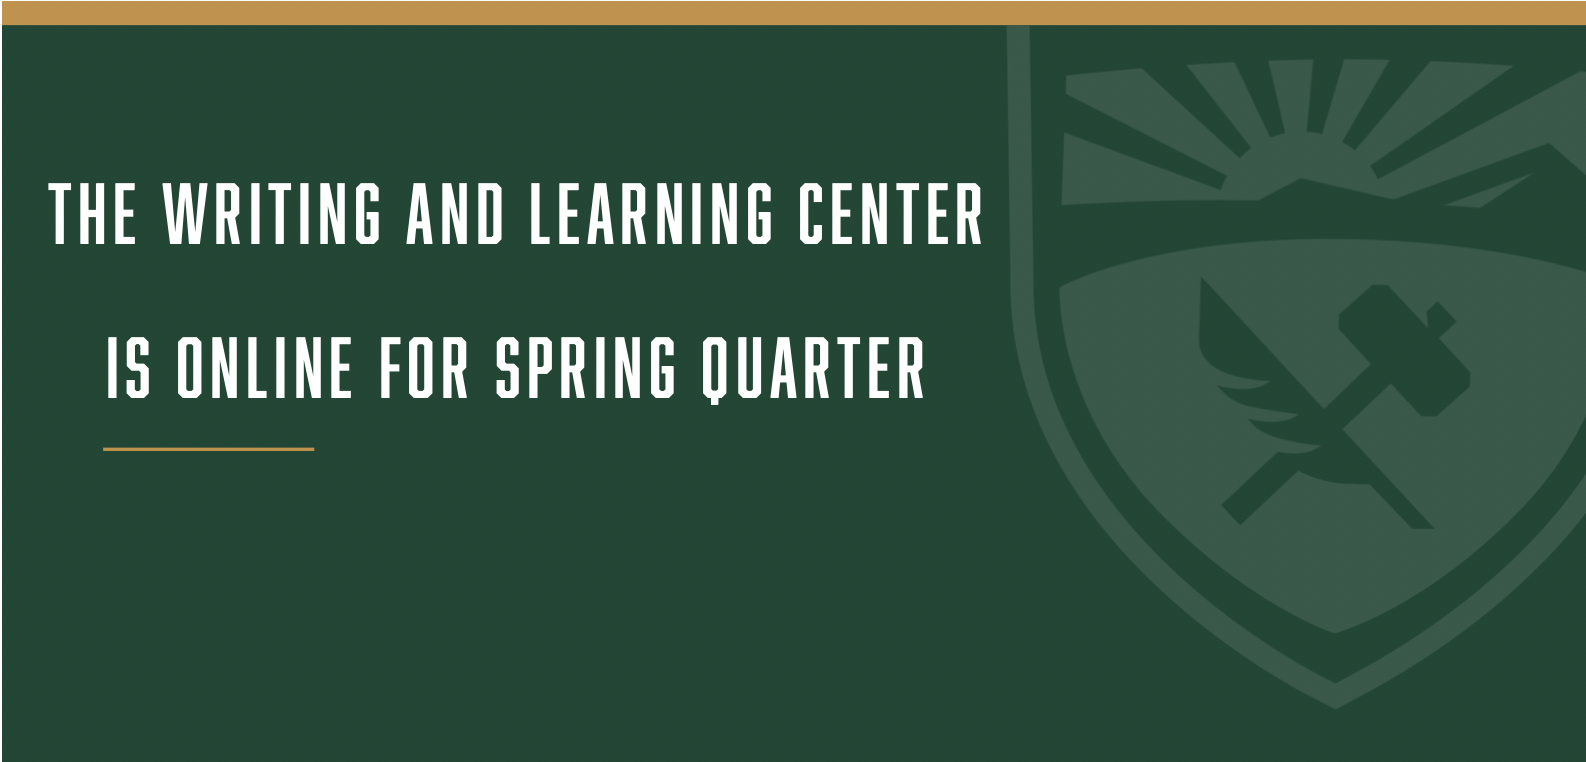 Spring quarter tutoring is available online.